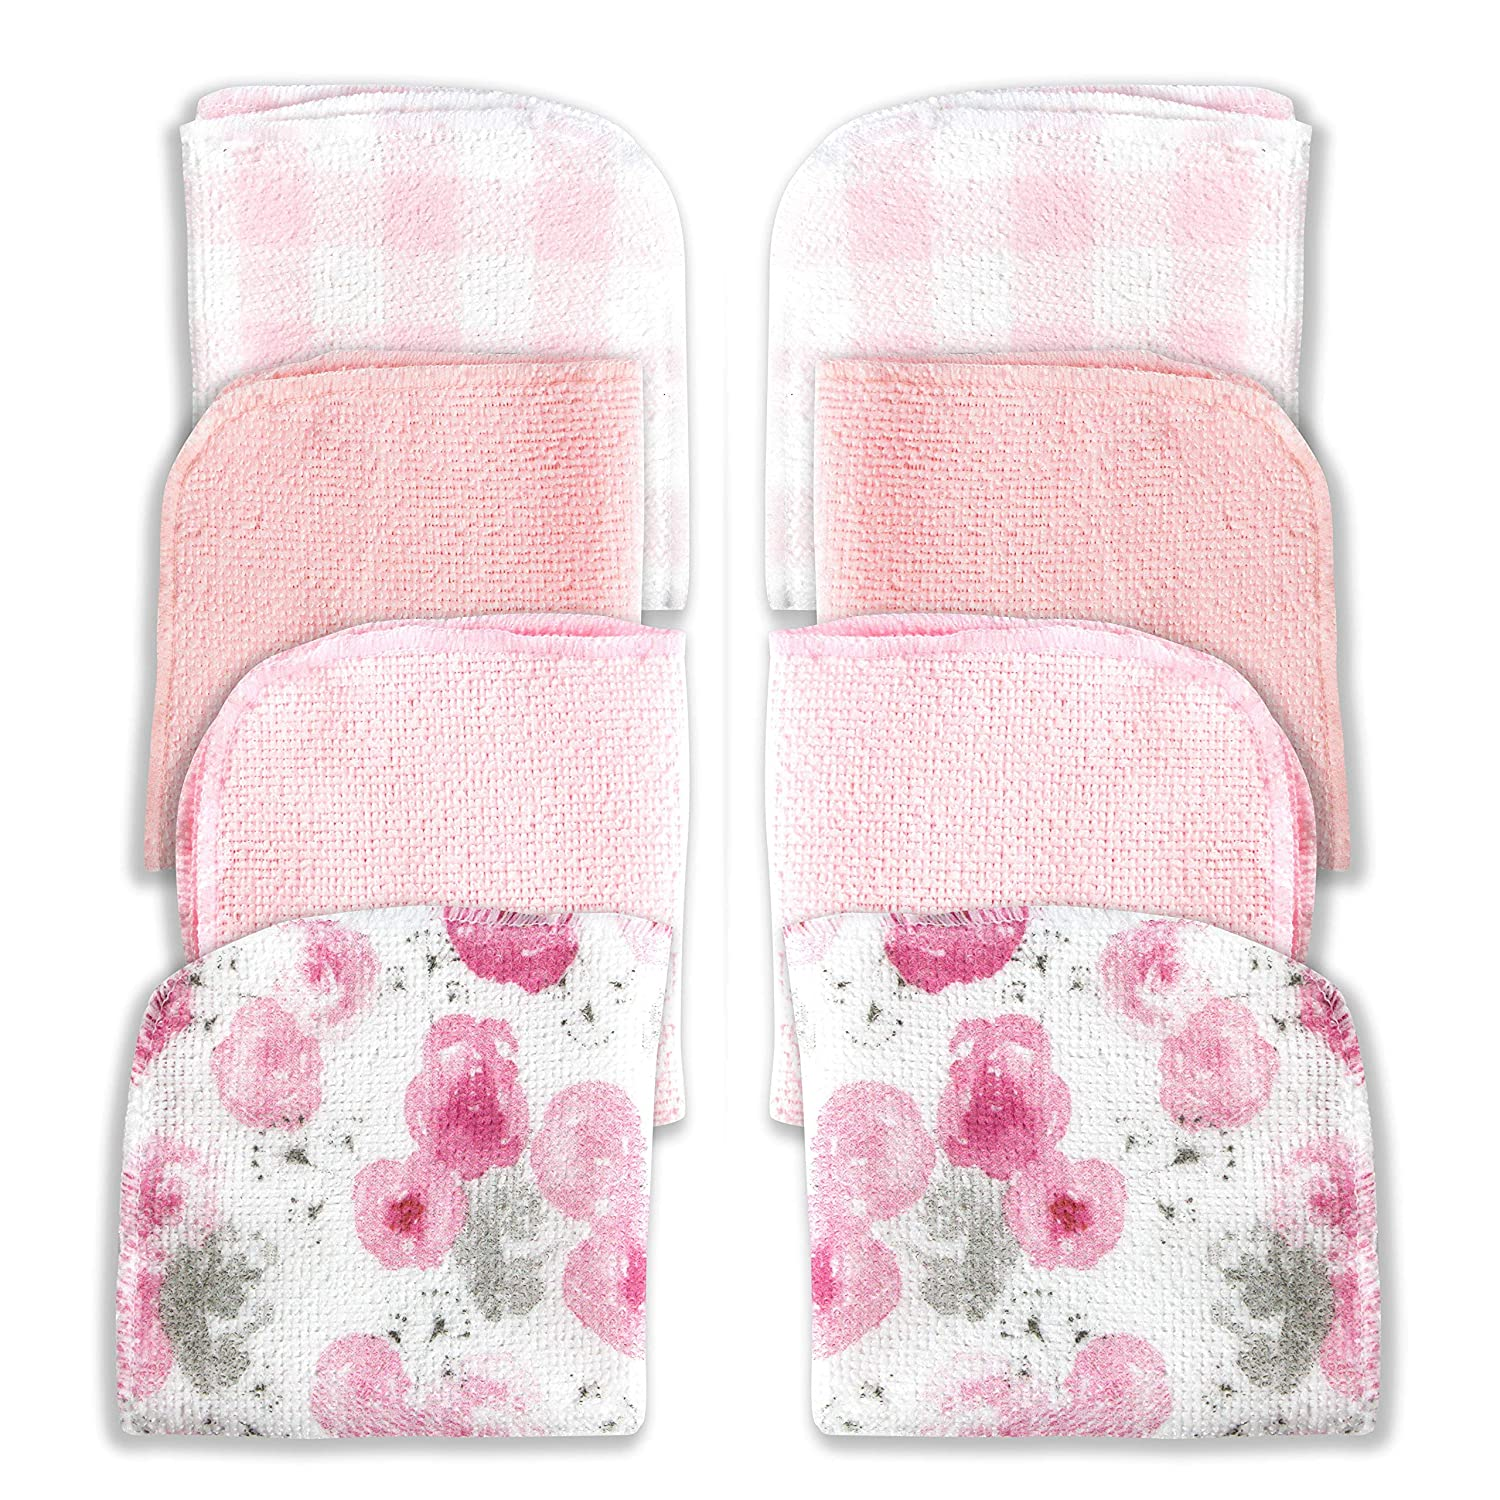 MODERN BABY 8 Pack Washcloth Set for Baby Girls & Boys Soft Reusable Wash Clothes Face Towels for Newborns Babies & Toddlers